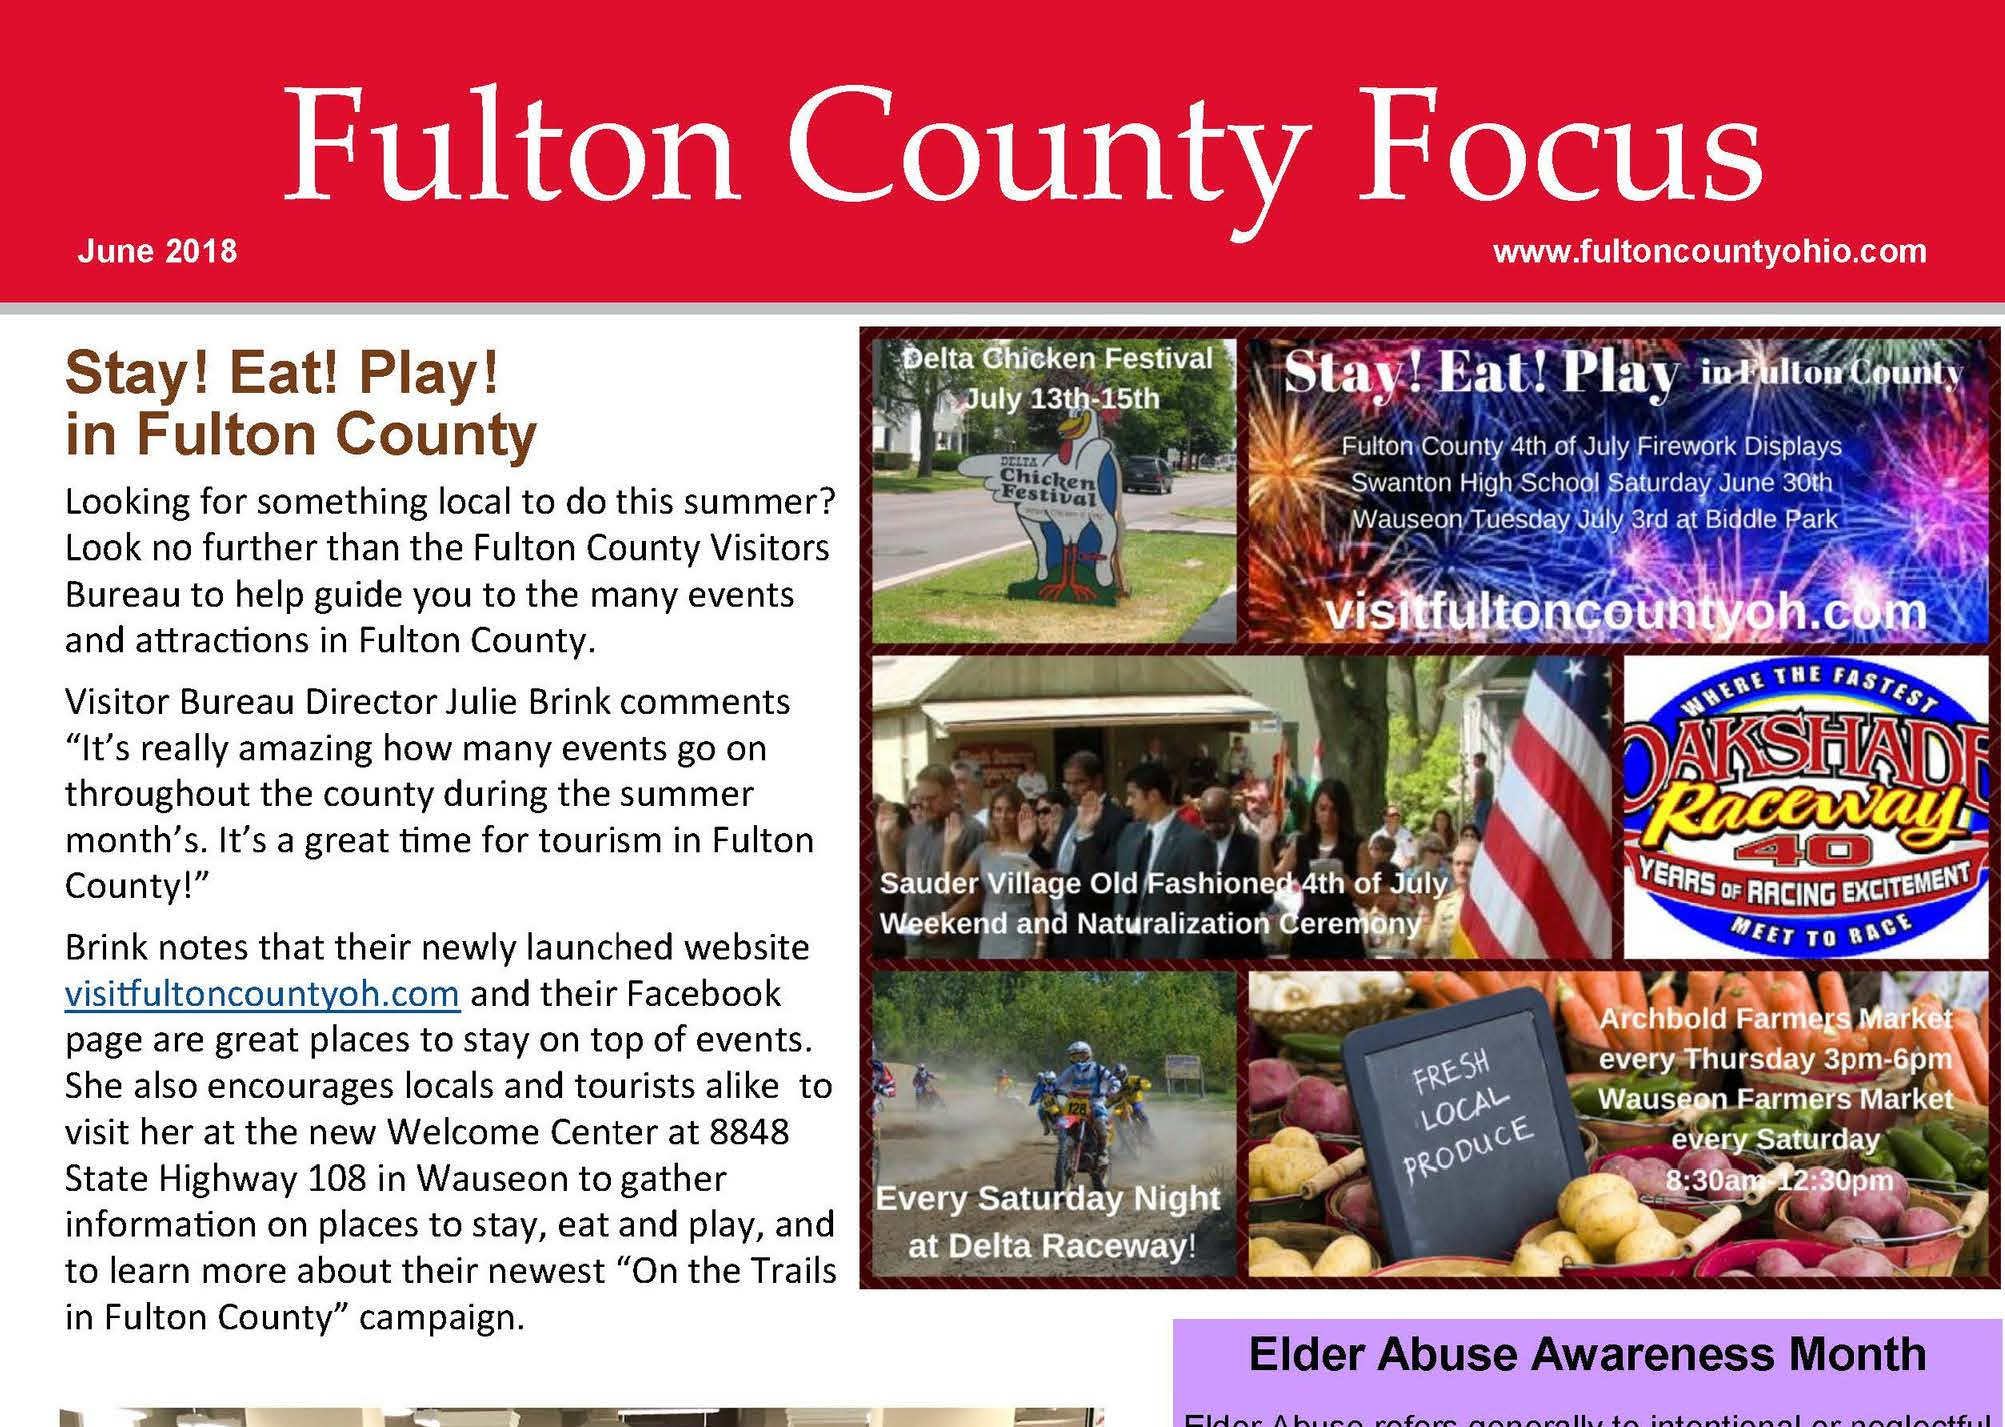 Fulton County Focus promotion image